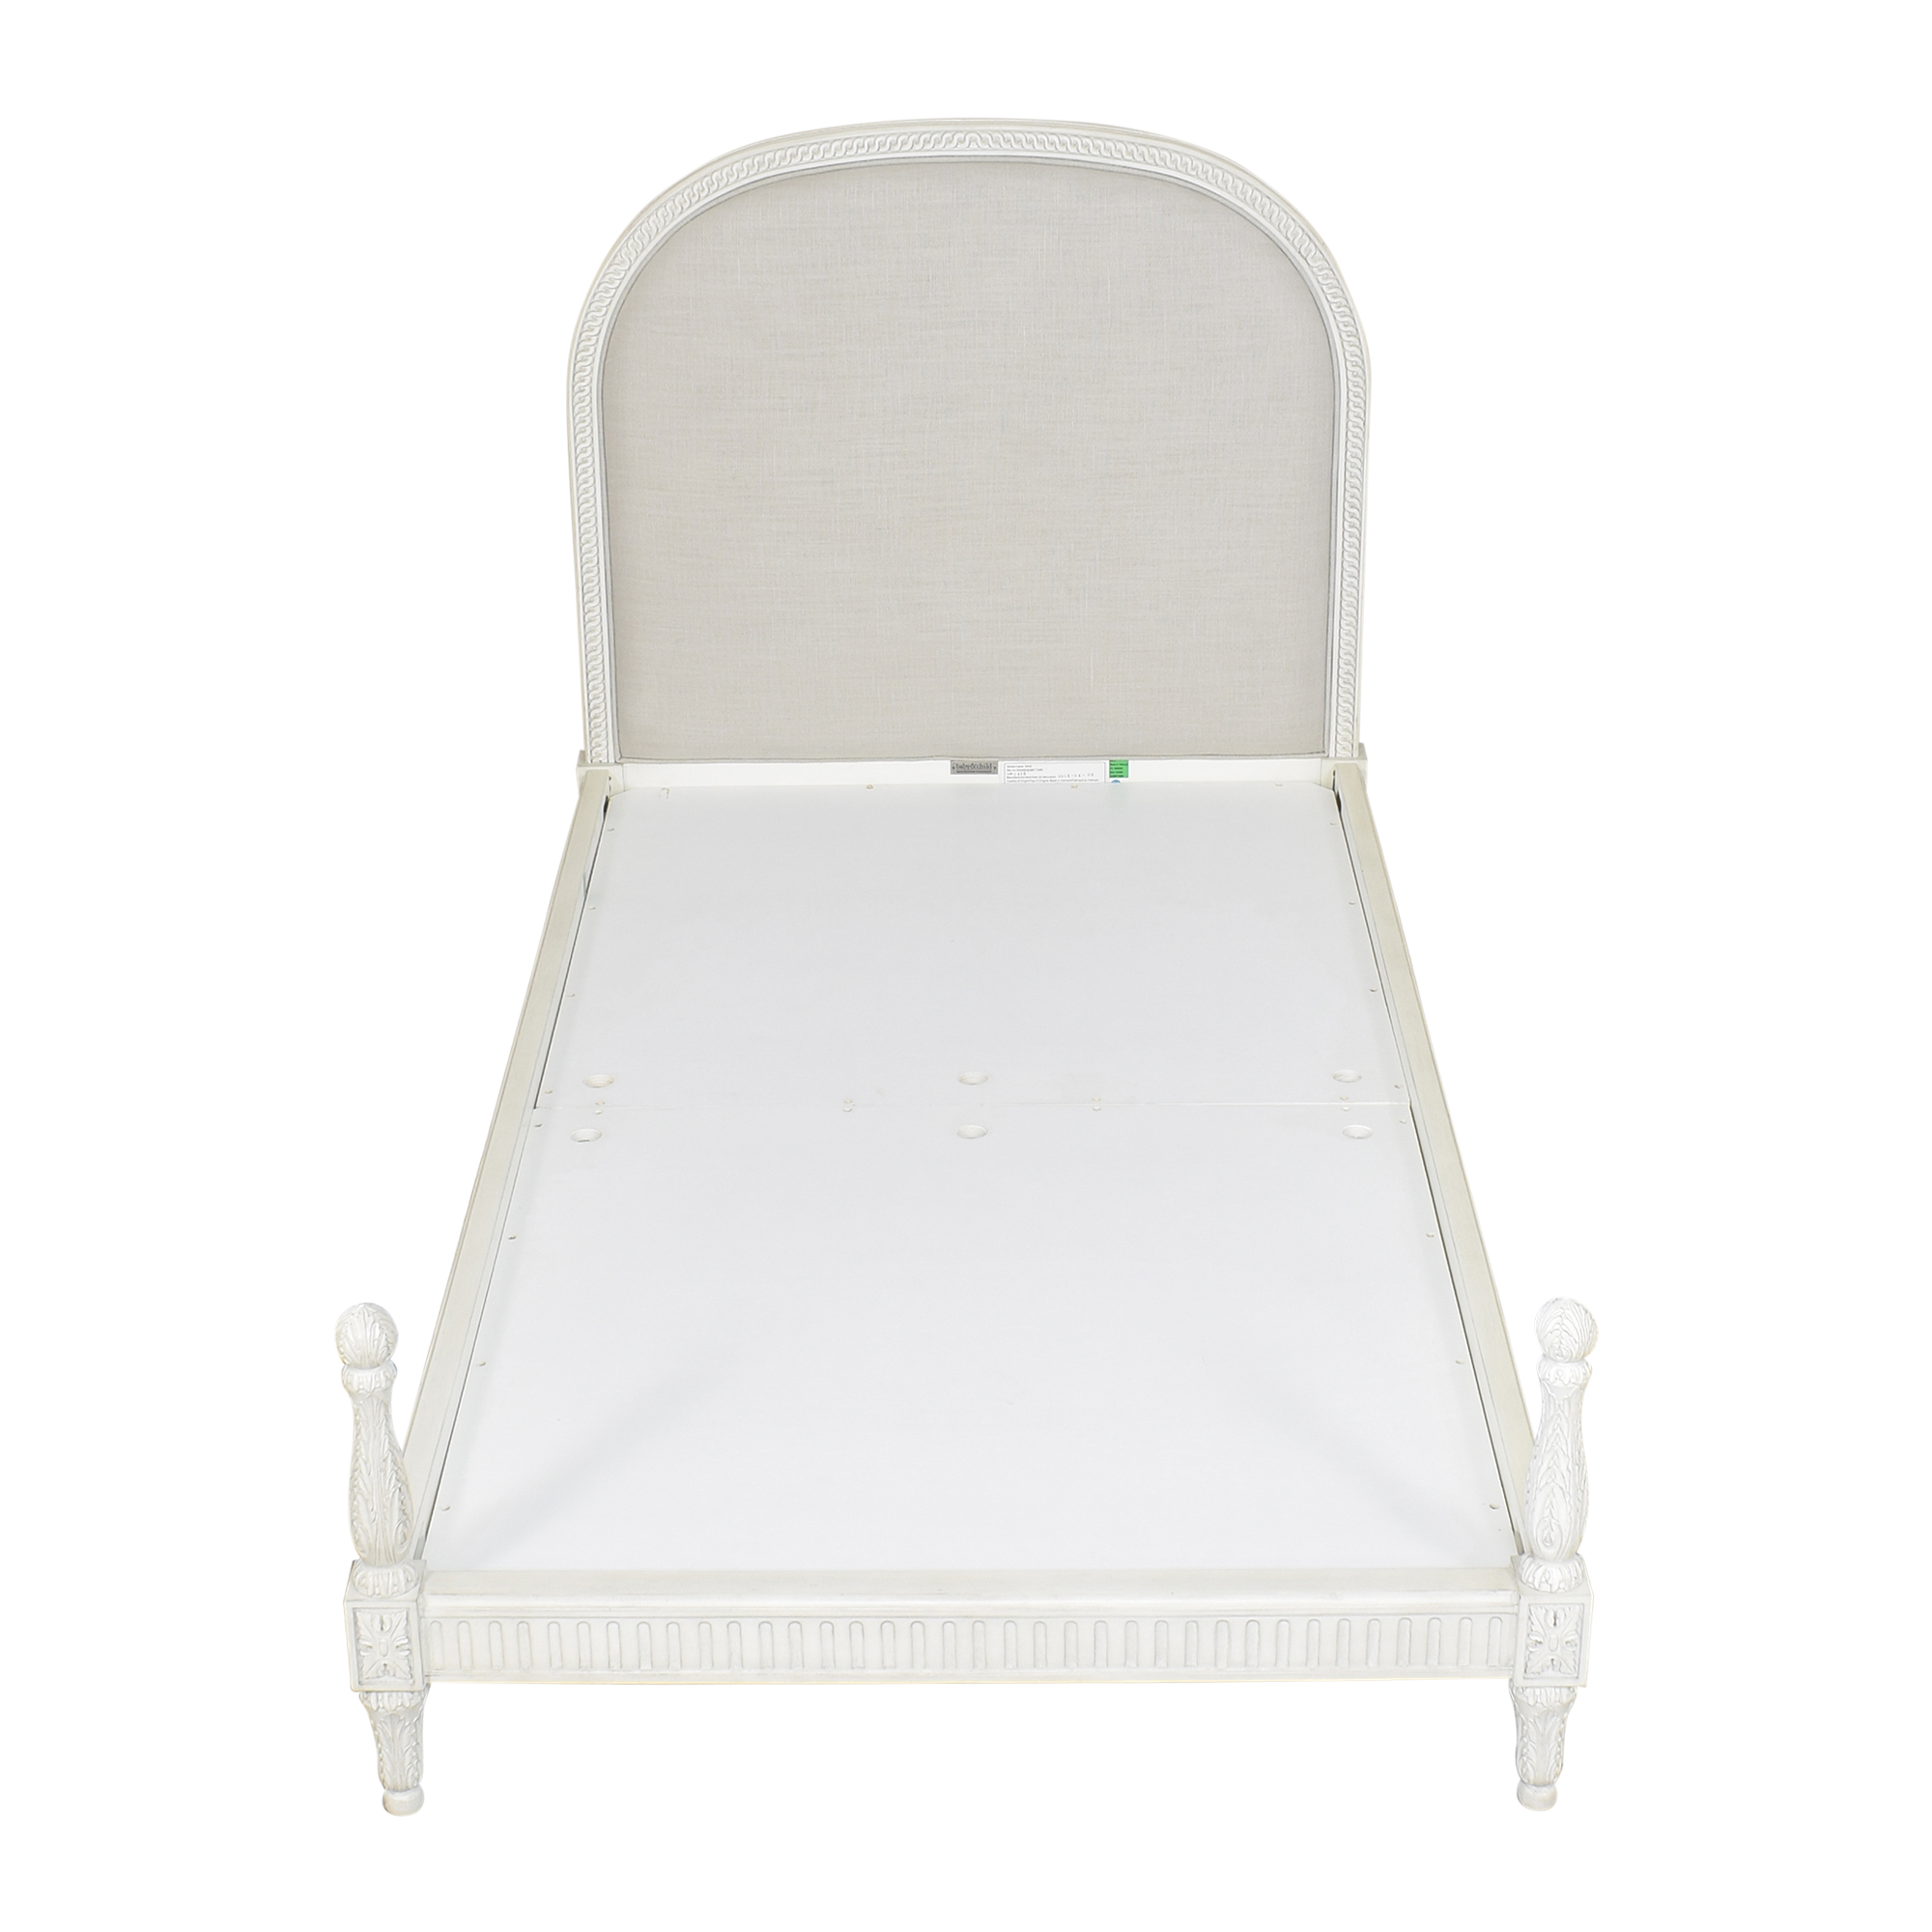 shop RH Baby & Child Upholstered Twin Bed RH Baby & Child Beds